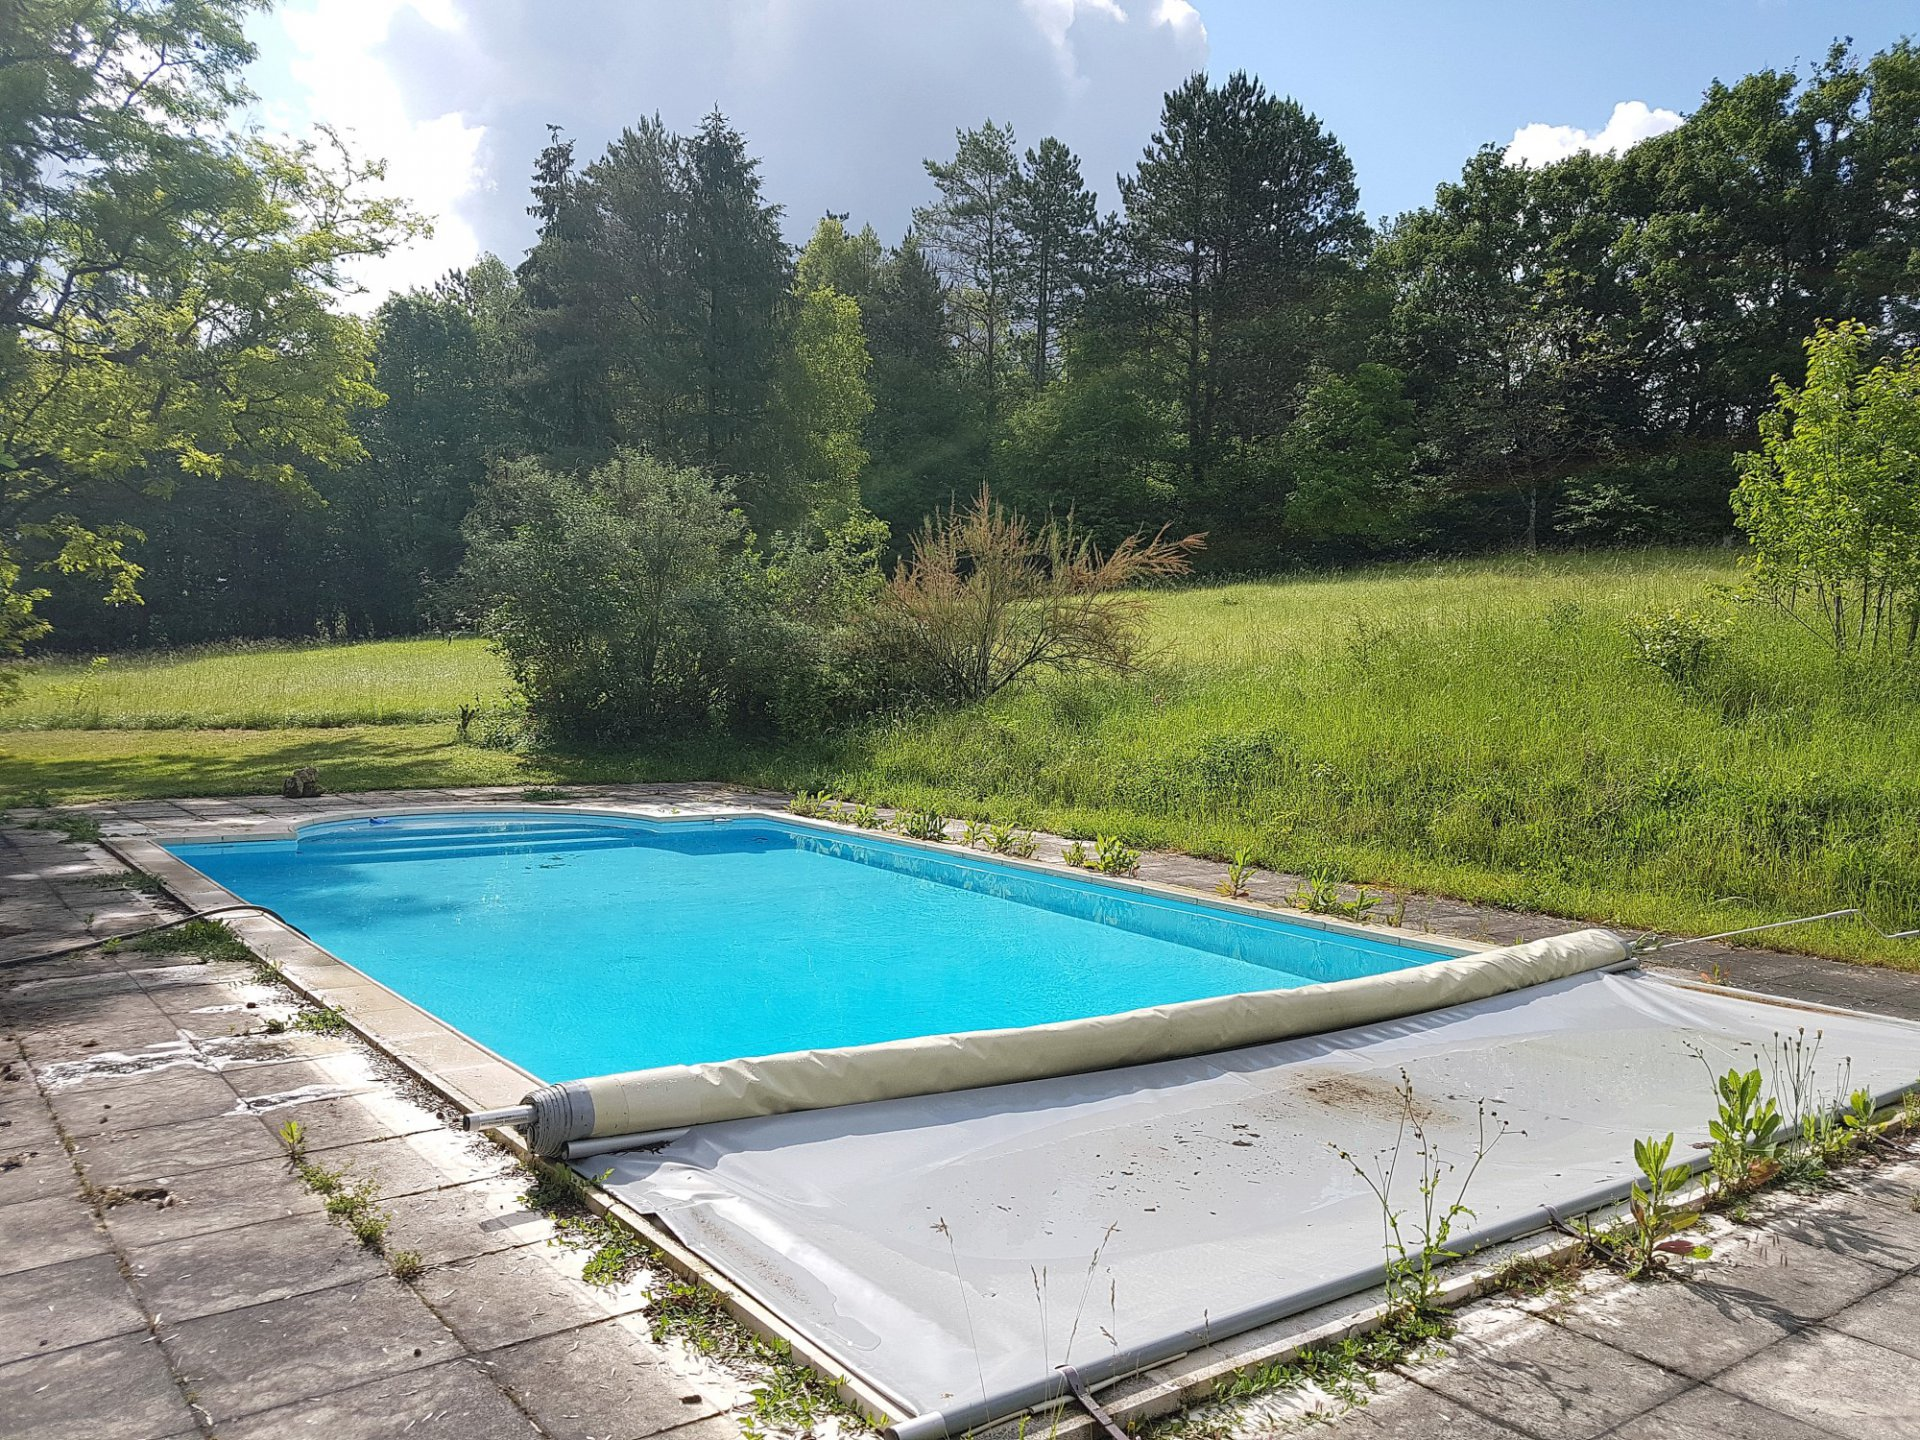 Touraine du Sud, Indre et Loire (37), property with pool and lake